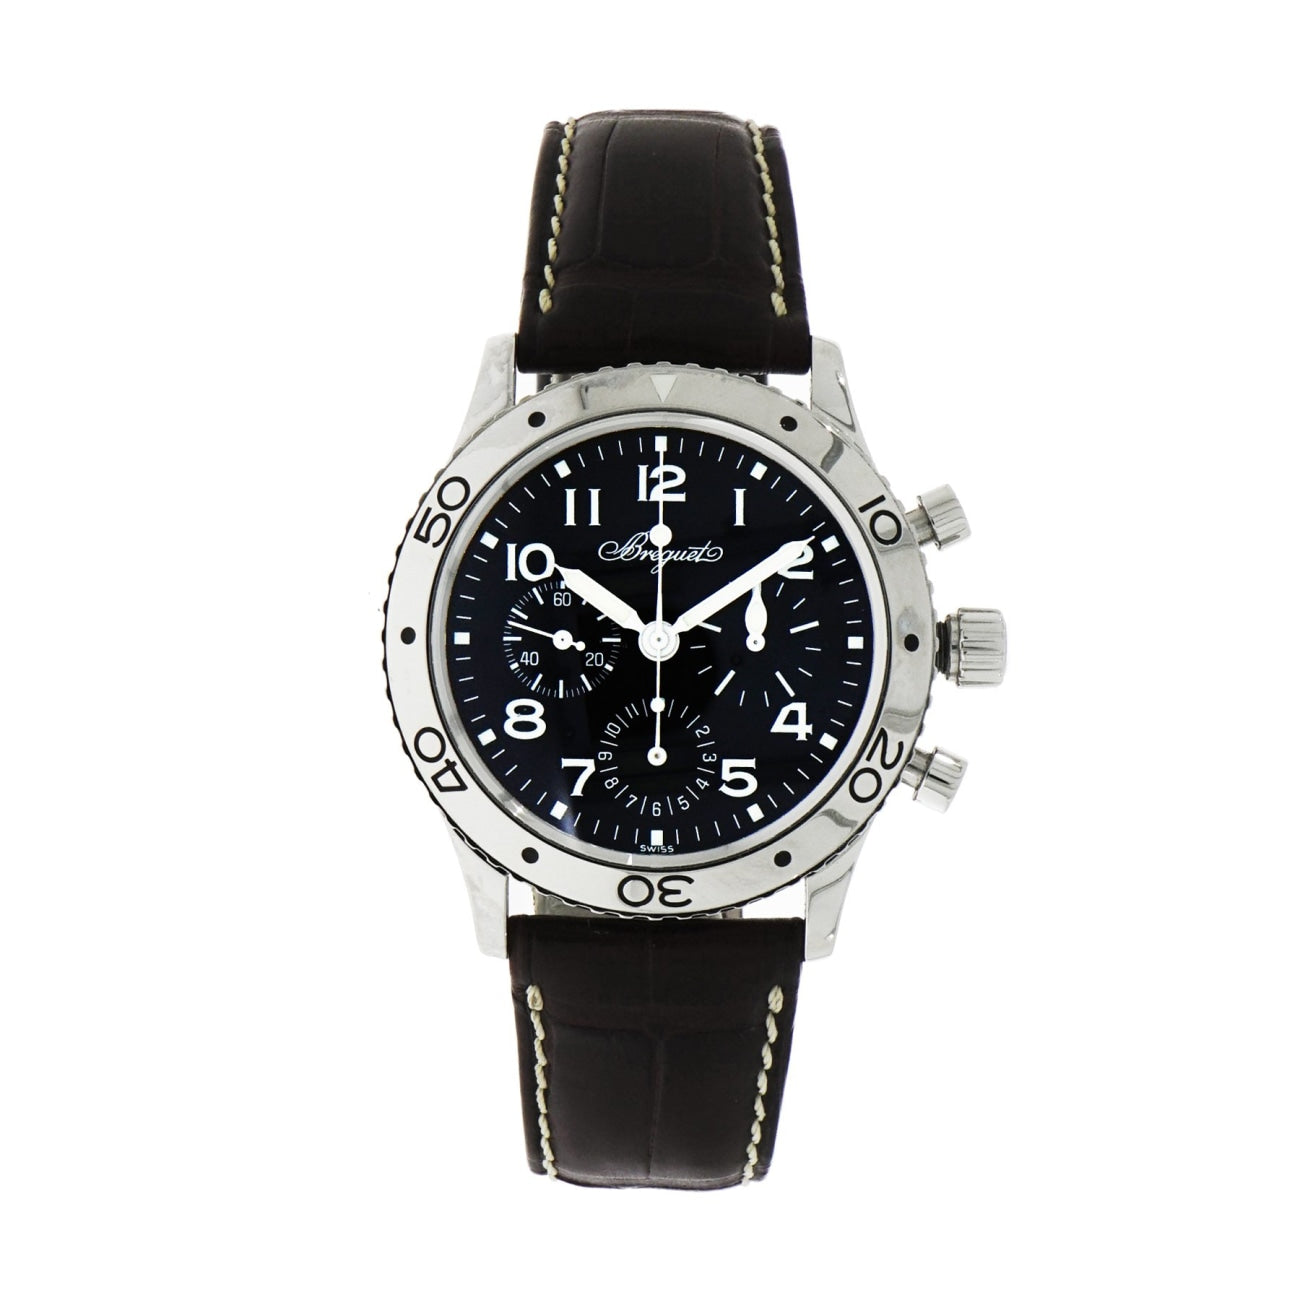 Pre-Owned Breguet Watches - Type XX | Manfredi Jewels